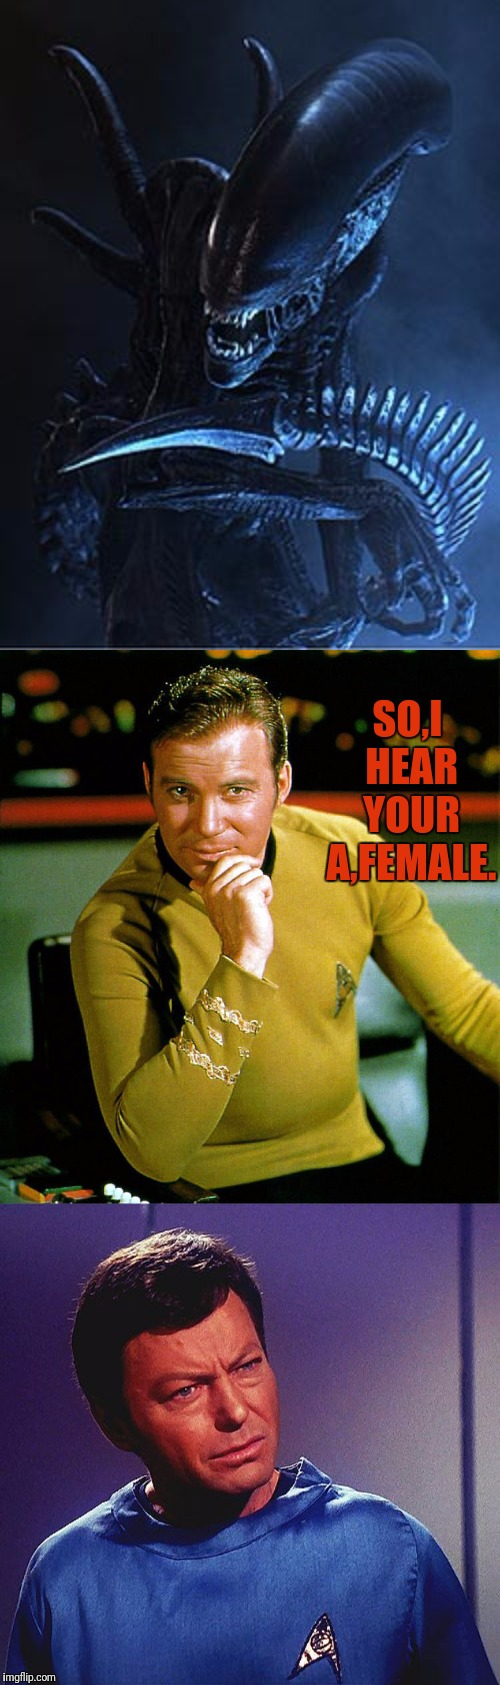 KIRK Uses A Dating Site |  SO,I HEAR YOUR A,FEMALE. | image tagged in star trek,captain kirk,kirk,bones,alien,bones mccoy | made w/ Imgflip meme maker